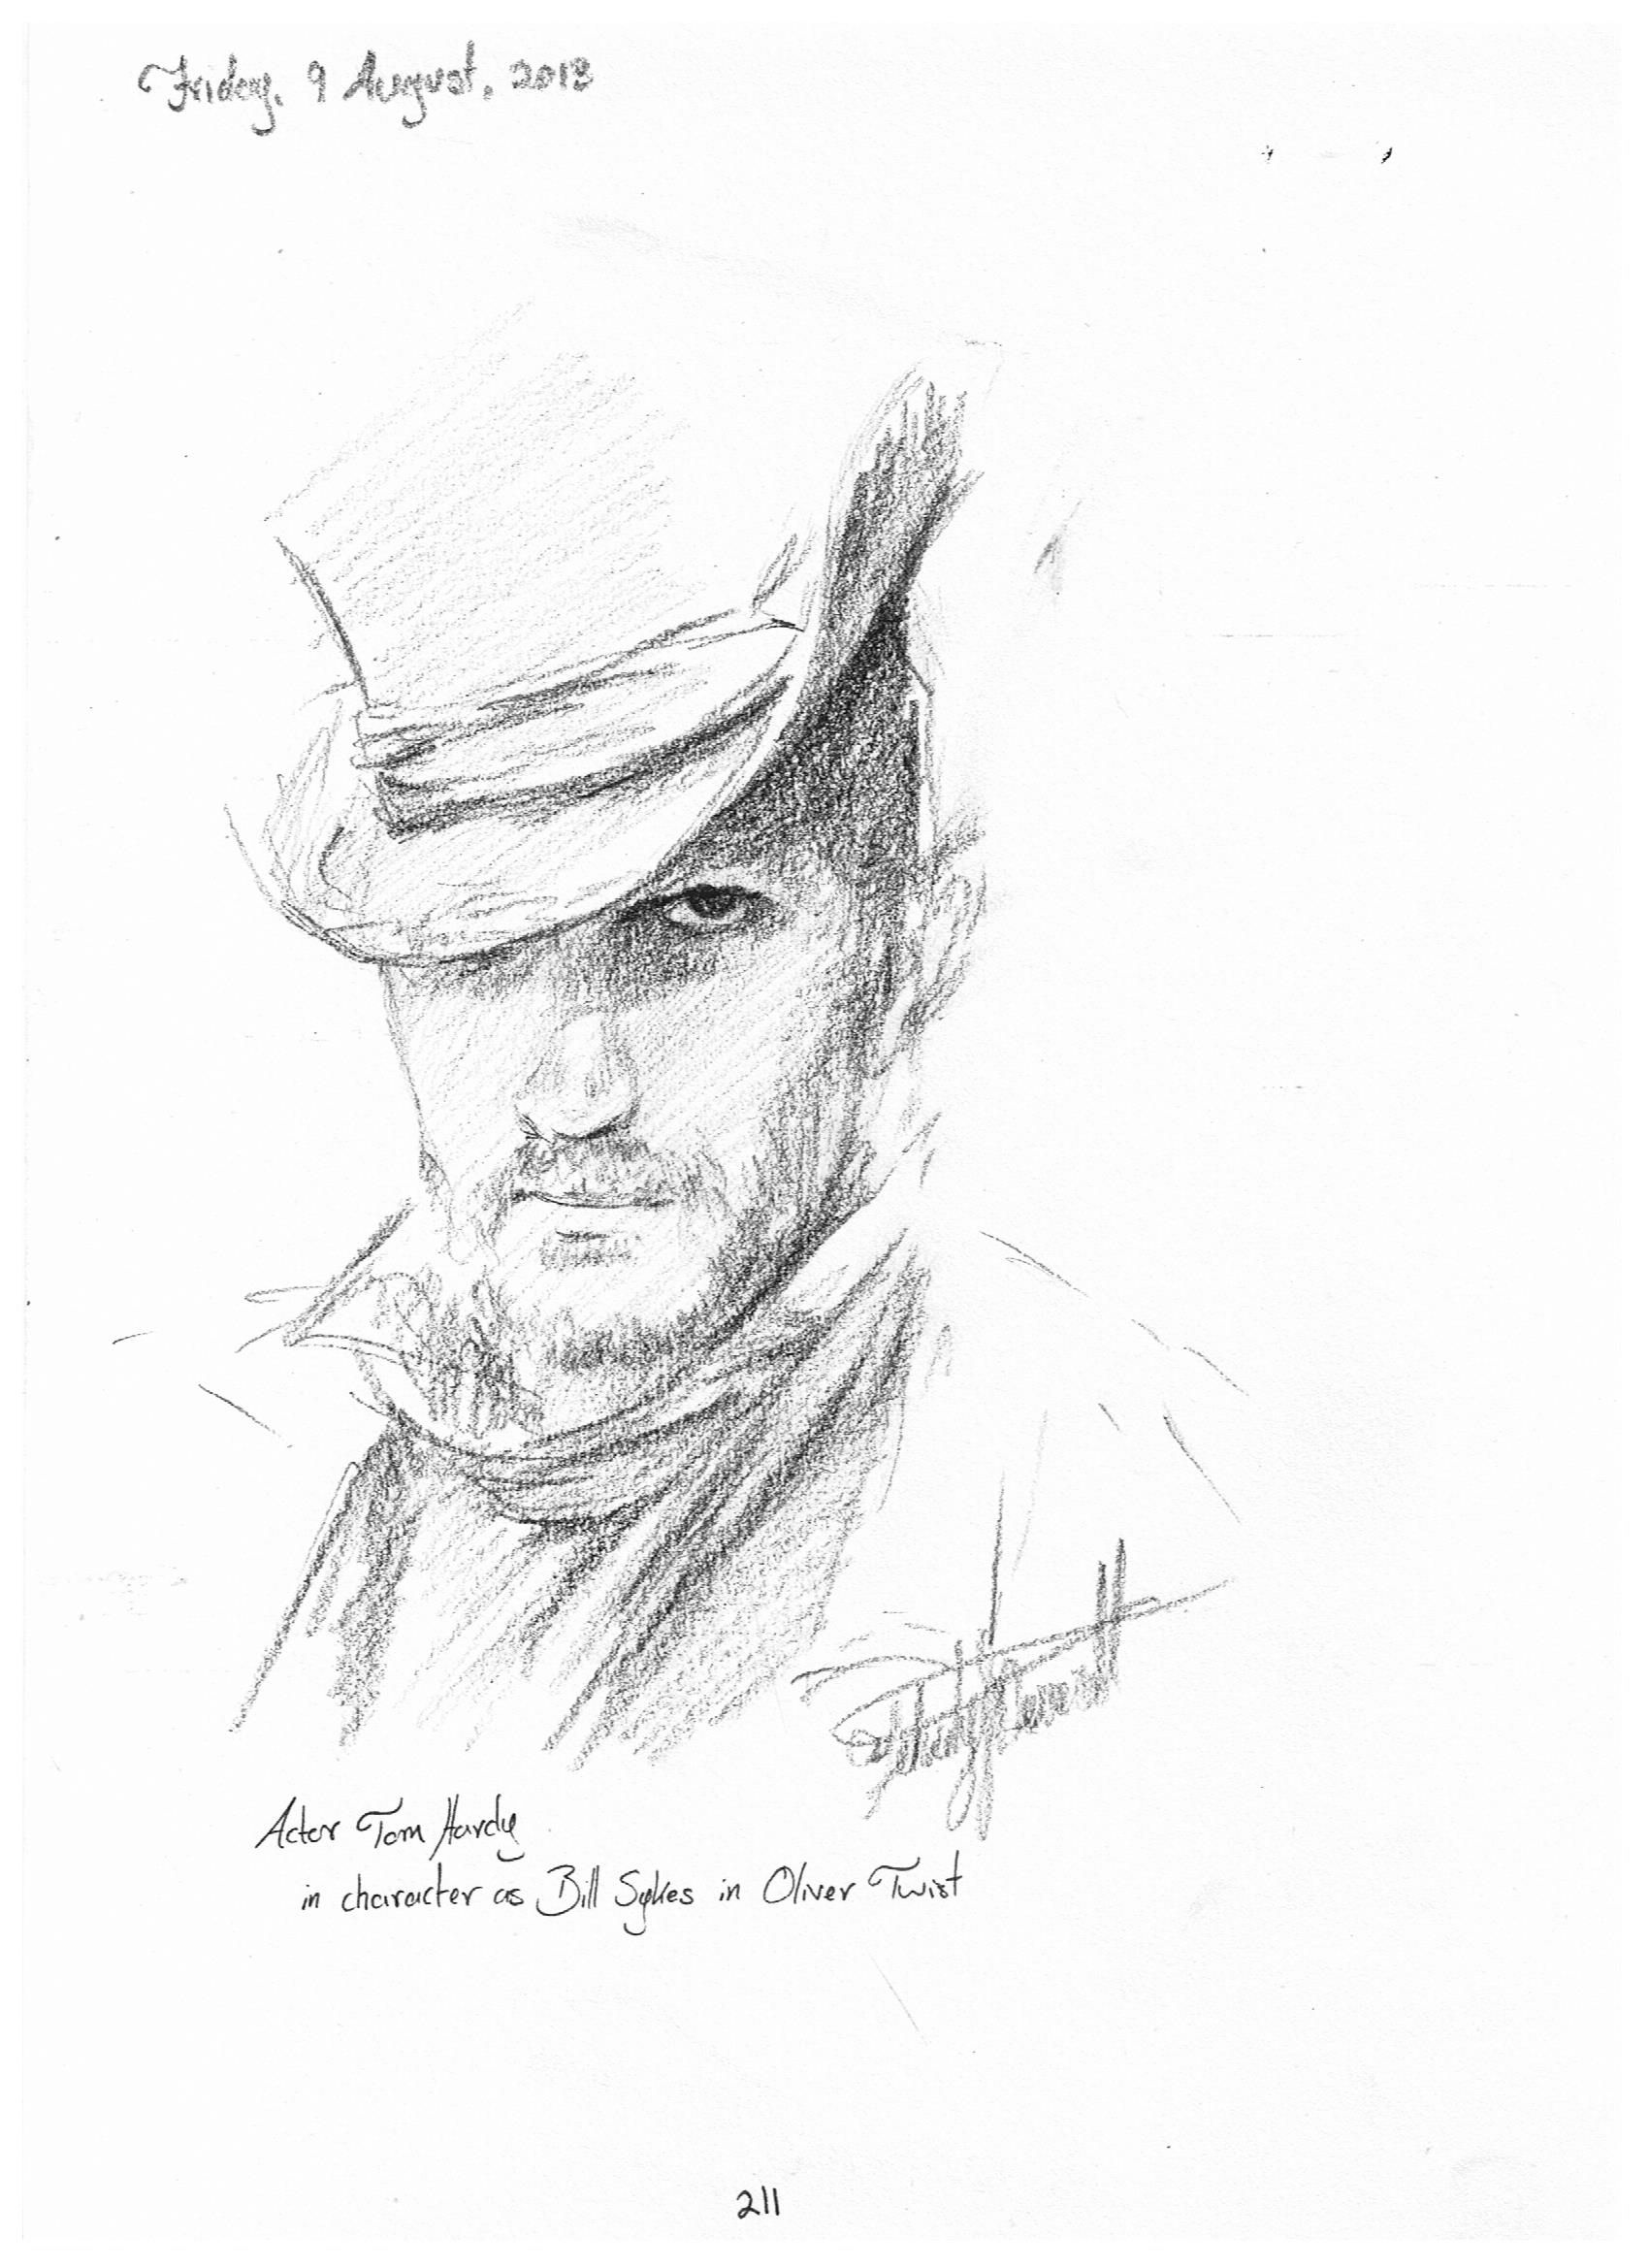 drawing of oliver twist character bill sykes played by tom drawing of oliver twist character bill sykes played by tom hardy